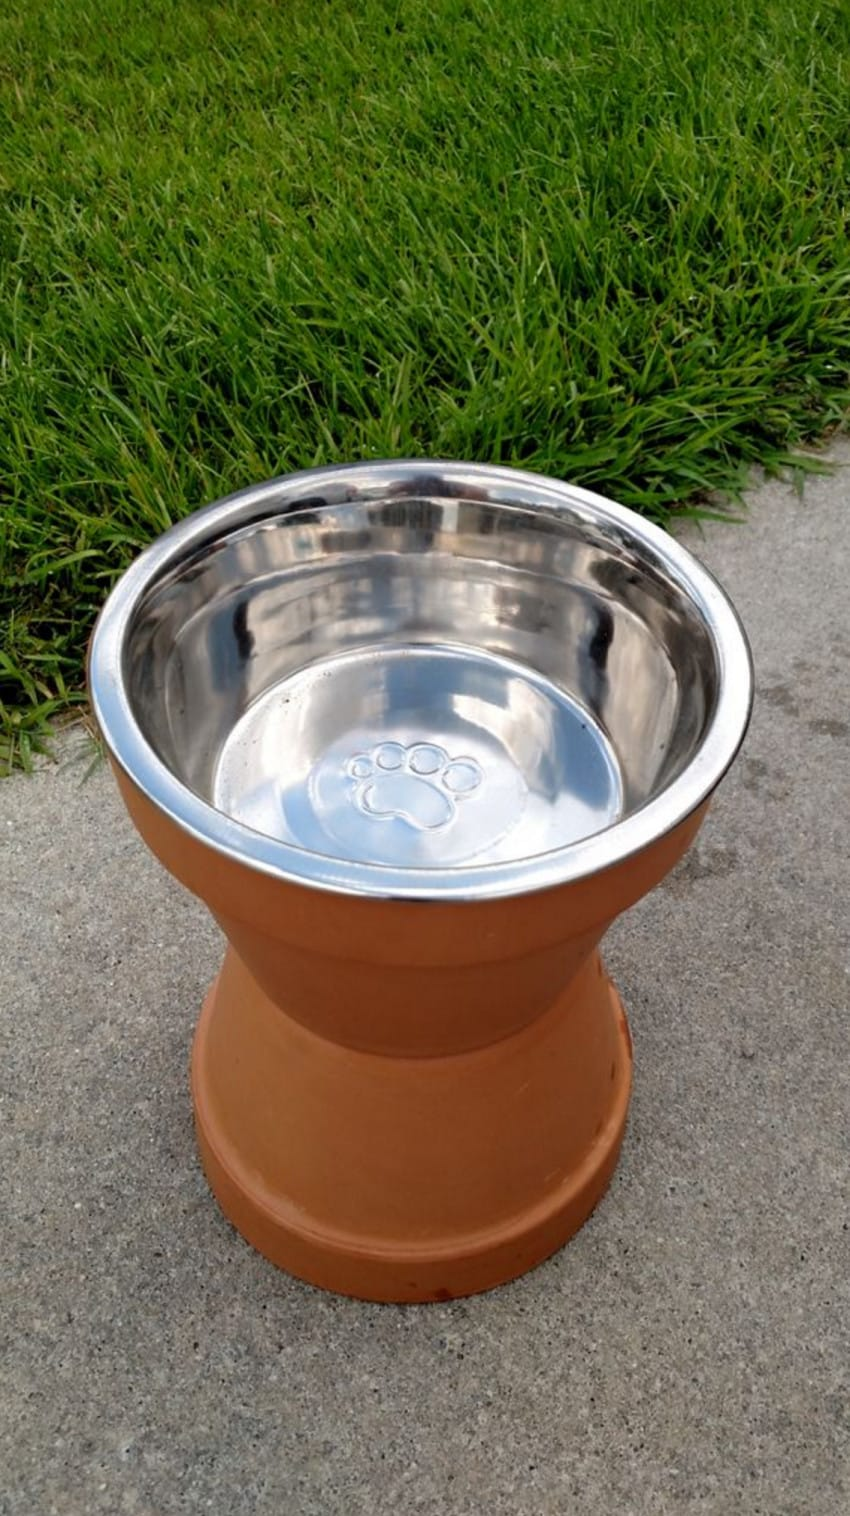 Water bowl stand made out of terra cotta pots